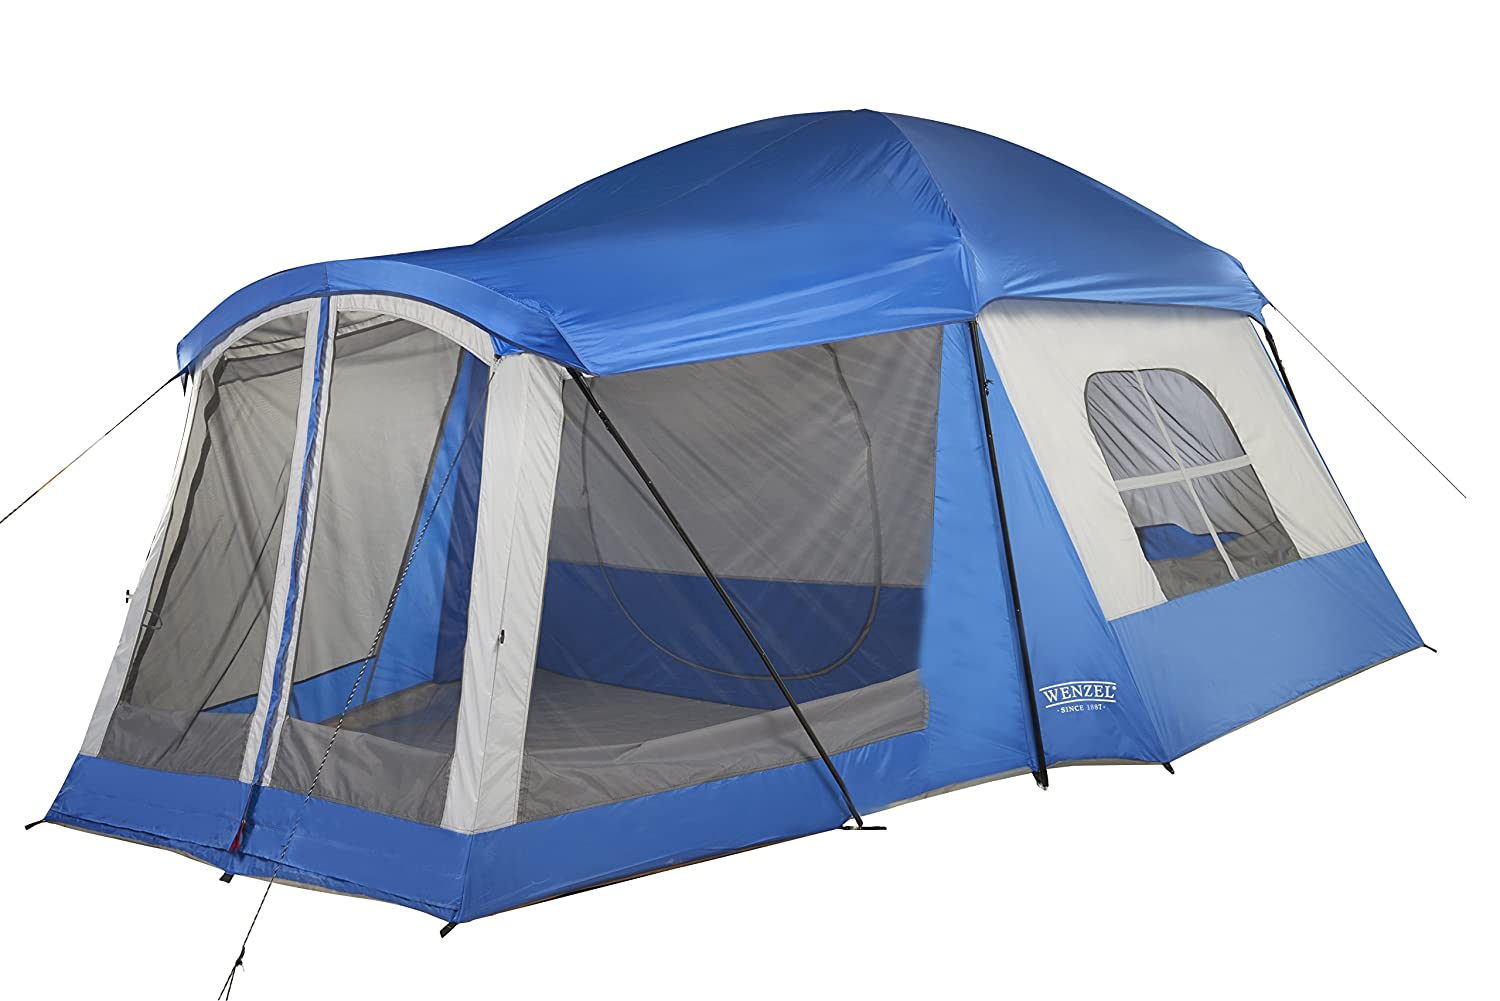 sc 1 st  Amazon.com & Amazon.com : Wenzel 8 Person Klondike Tent Blue : Sports u0026 Outdoors